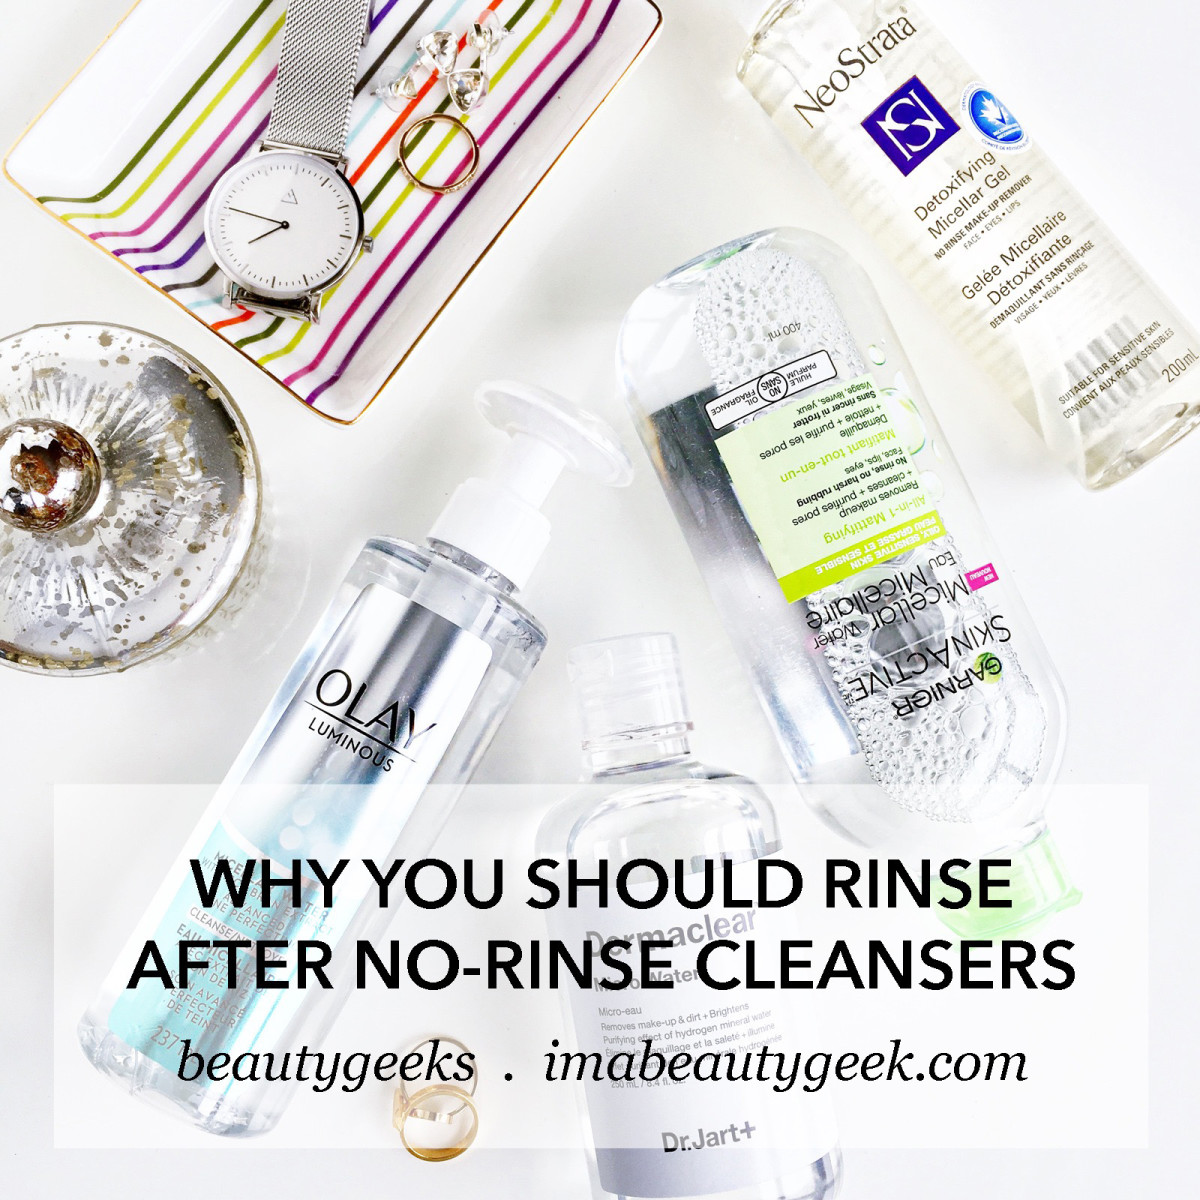 Why you should rinse after using no-rinse cleansers-BEAUTYGEEKS